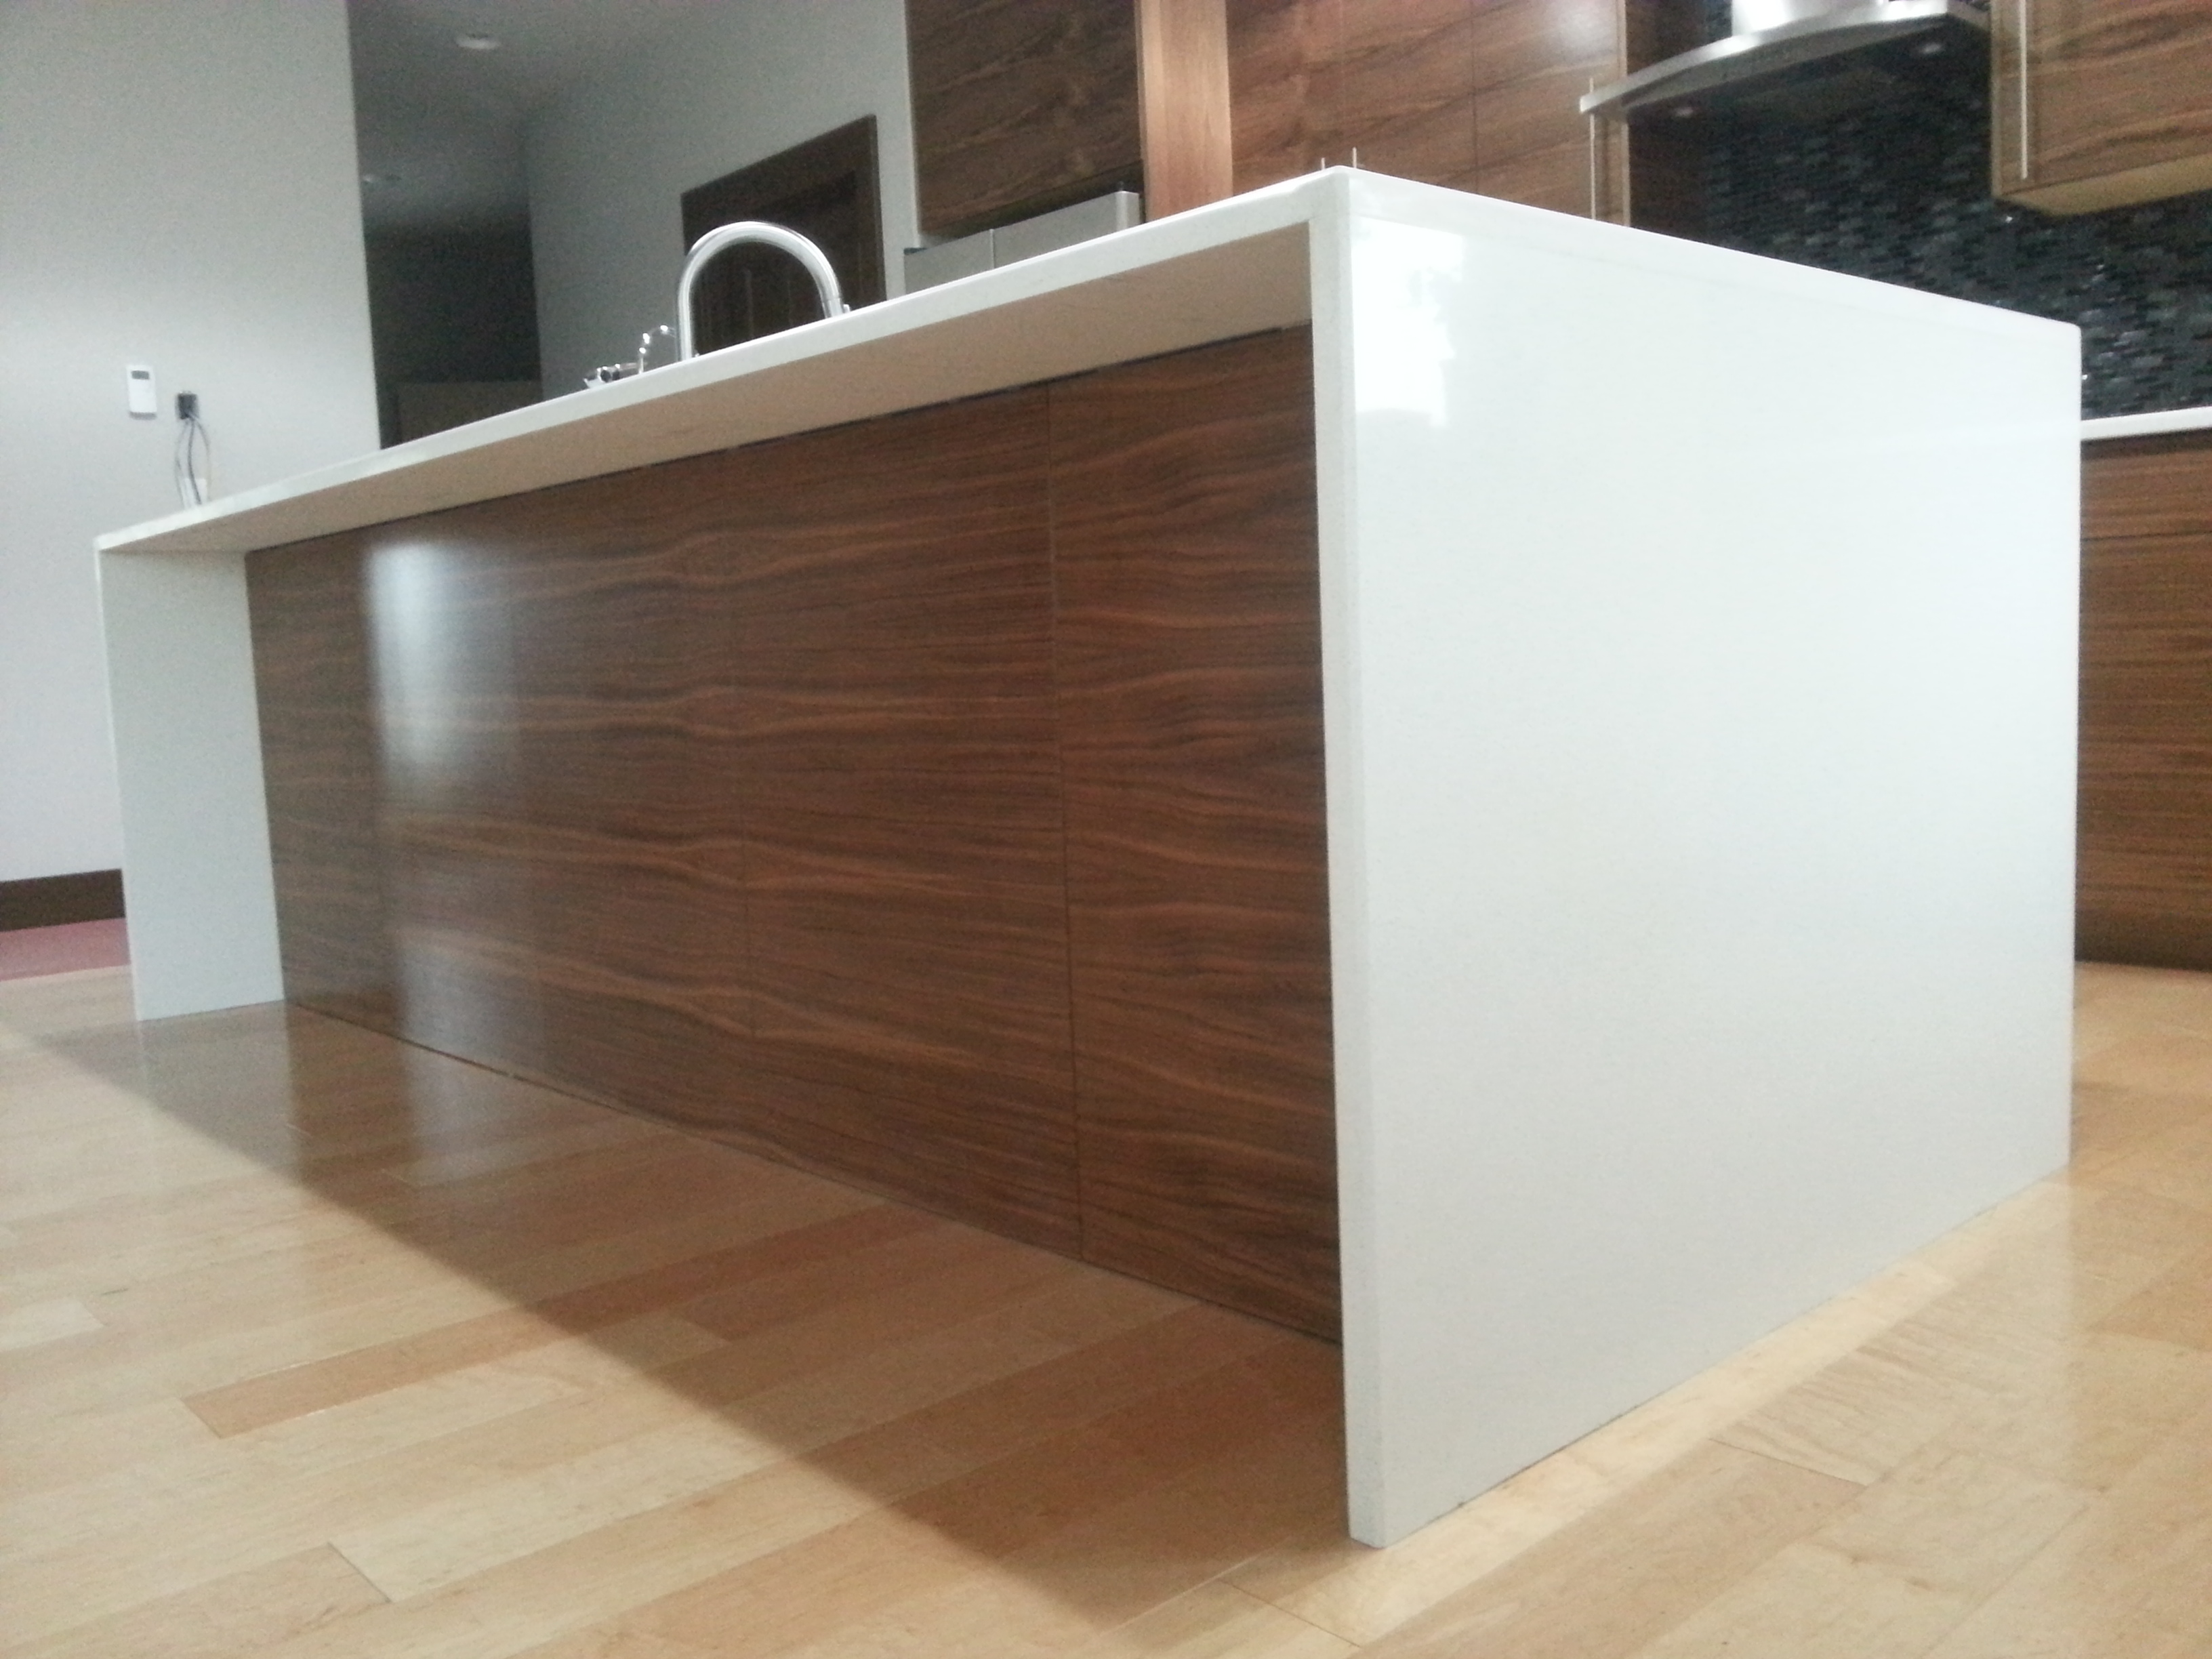 Solid Surface Counter Tops Central Oregon Construction Amp Maintenance Llc